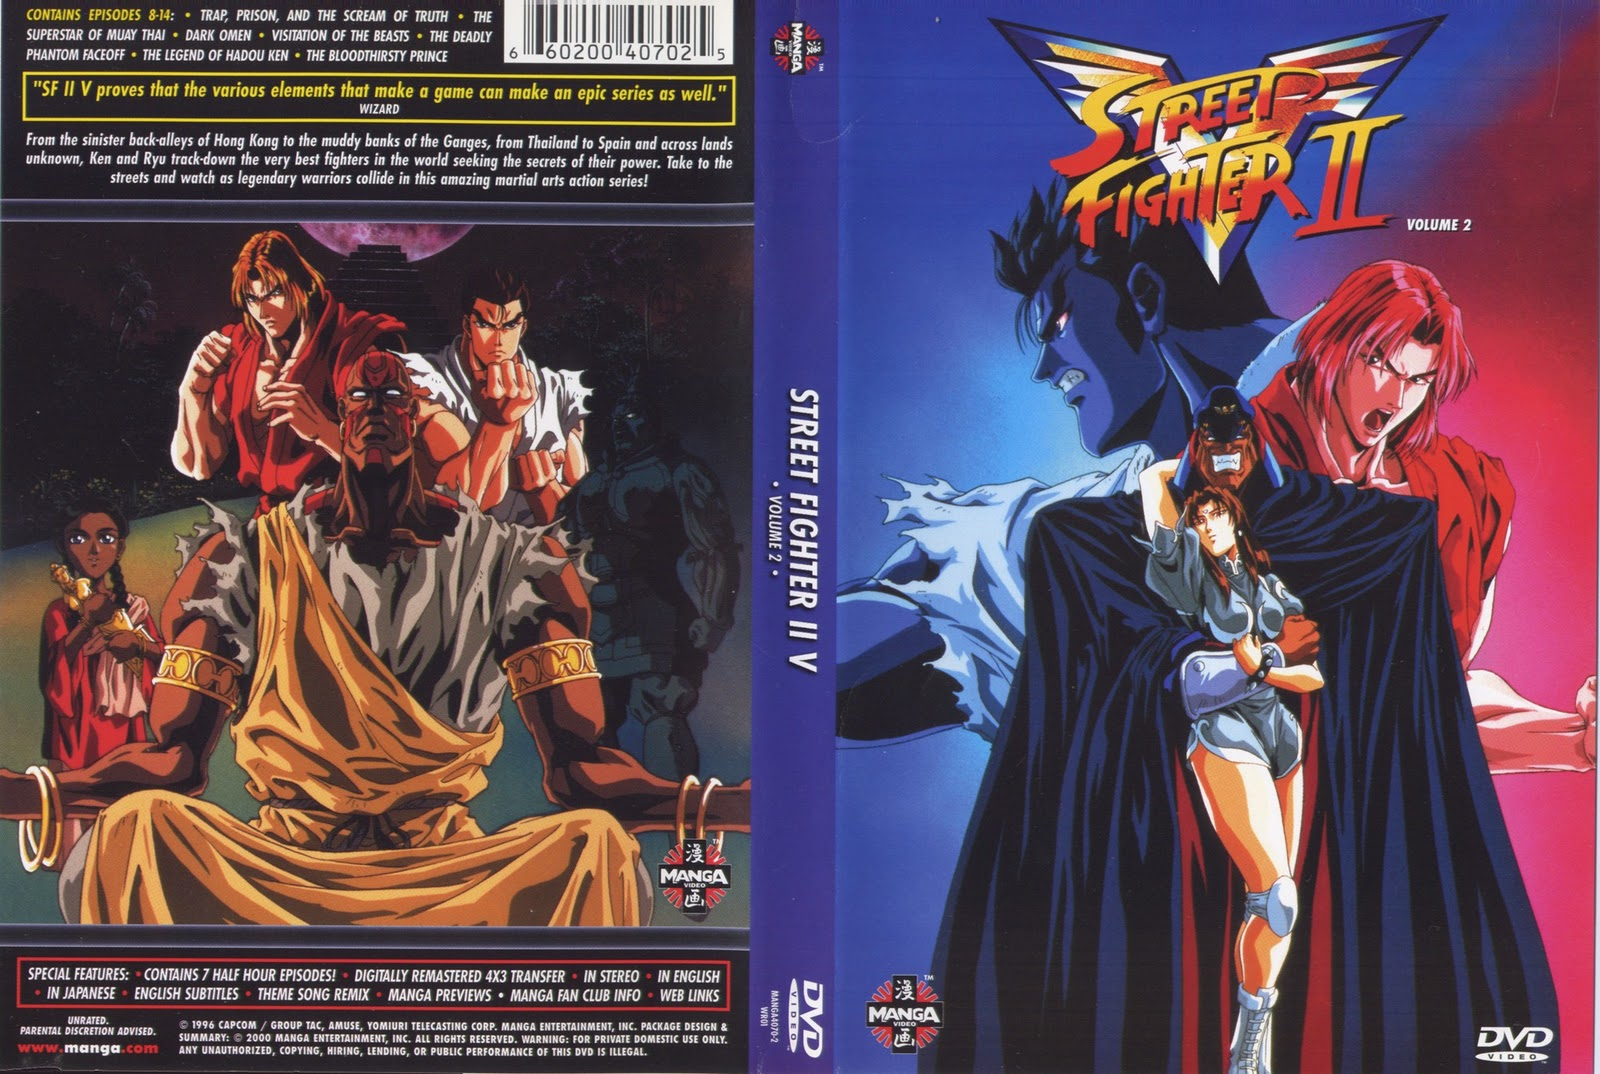 Street Fighter II: Victory Vol 2 Torrent – Dublado DVD-R Dual Áudio